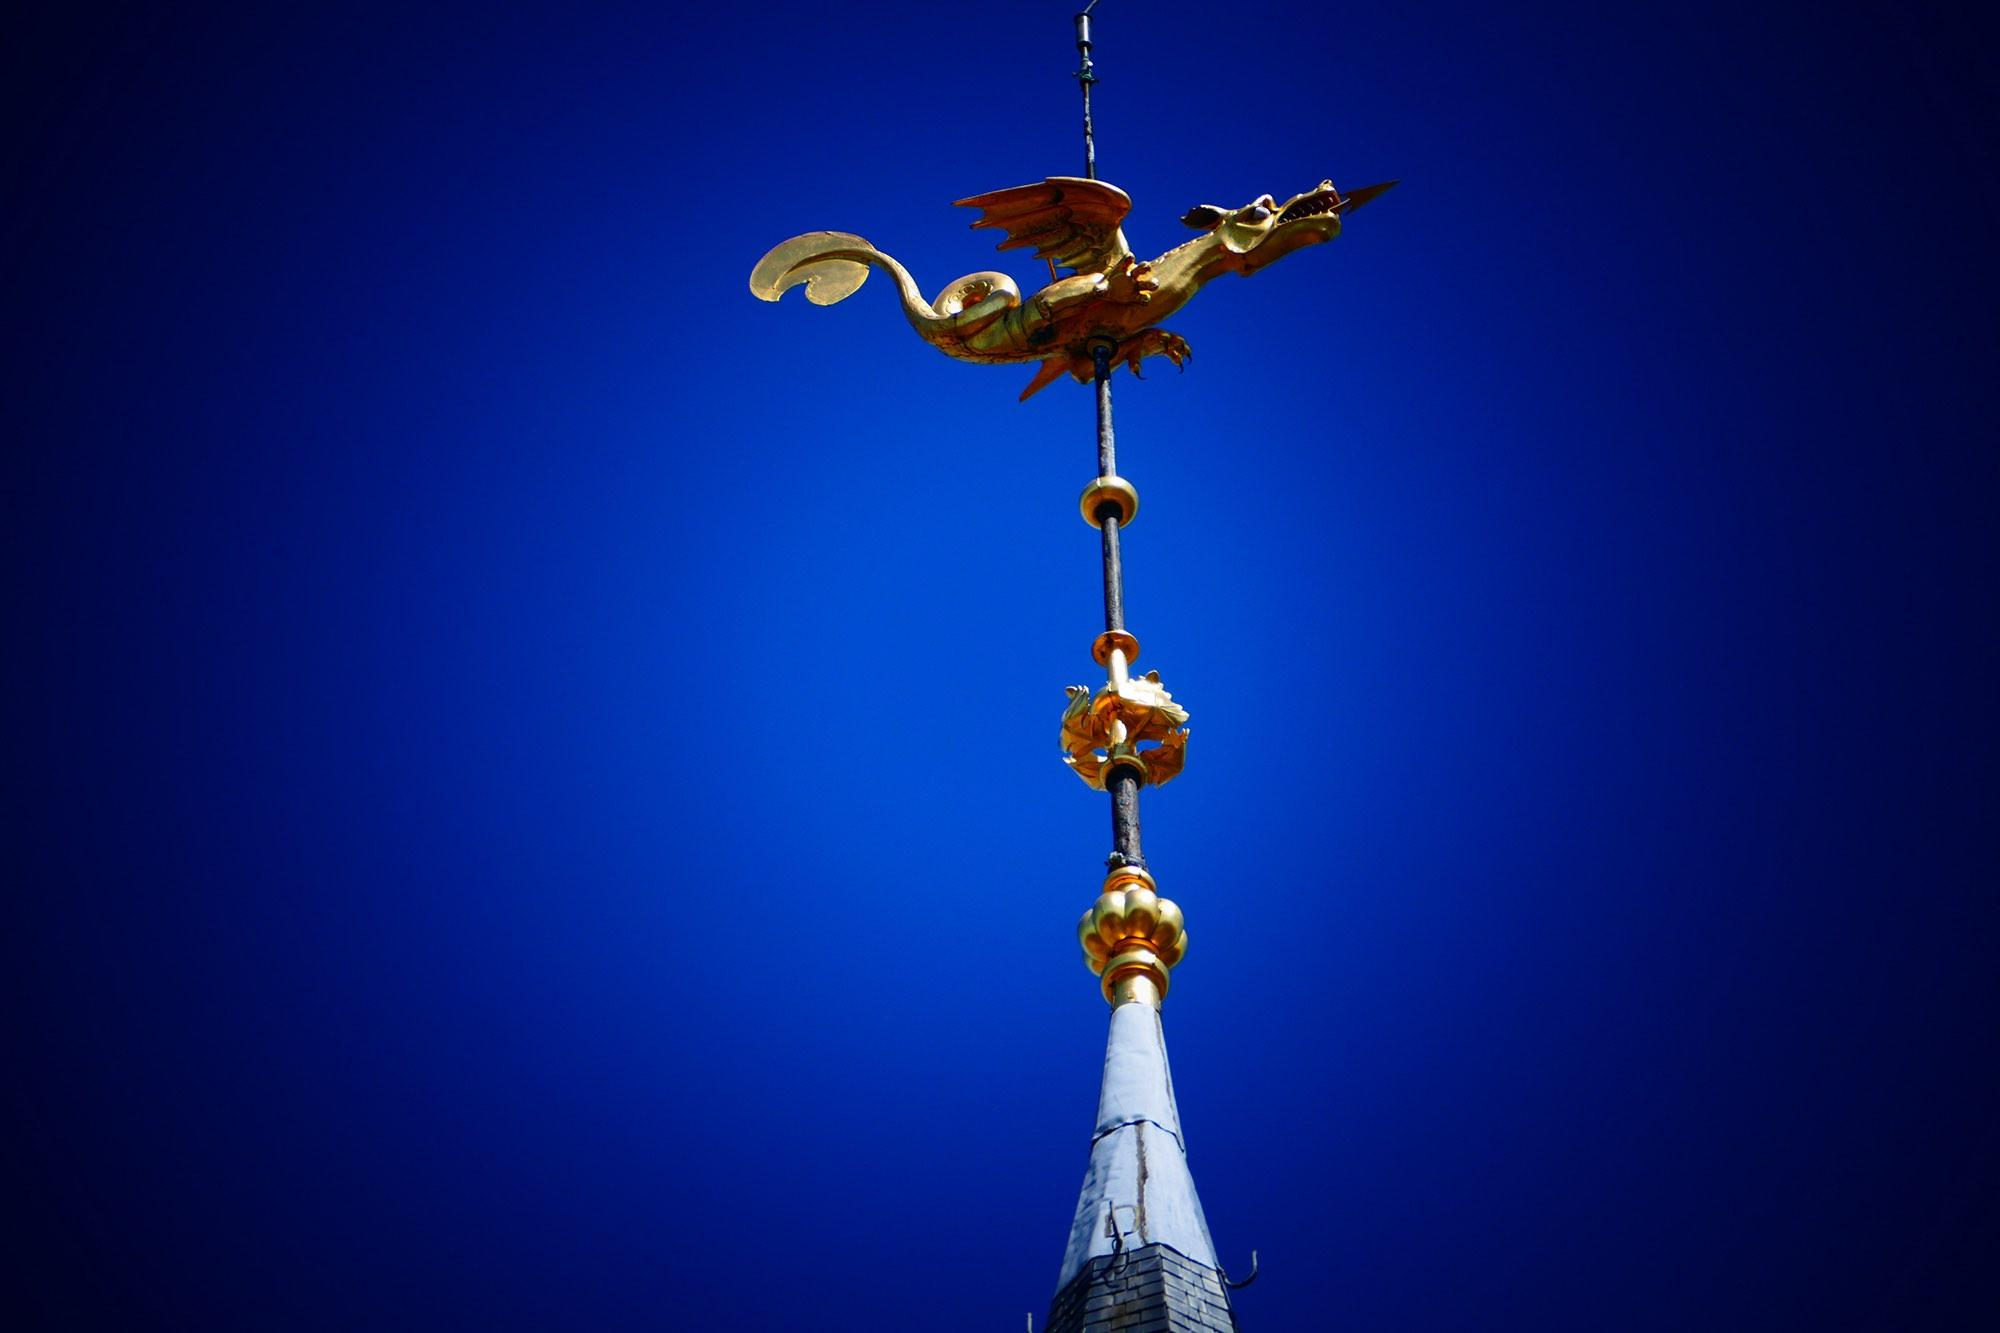 On top of the belfry, the weathervane in the shape of a dragon is covered with gold leaf. – © Thierry Glorieux